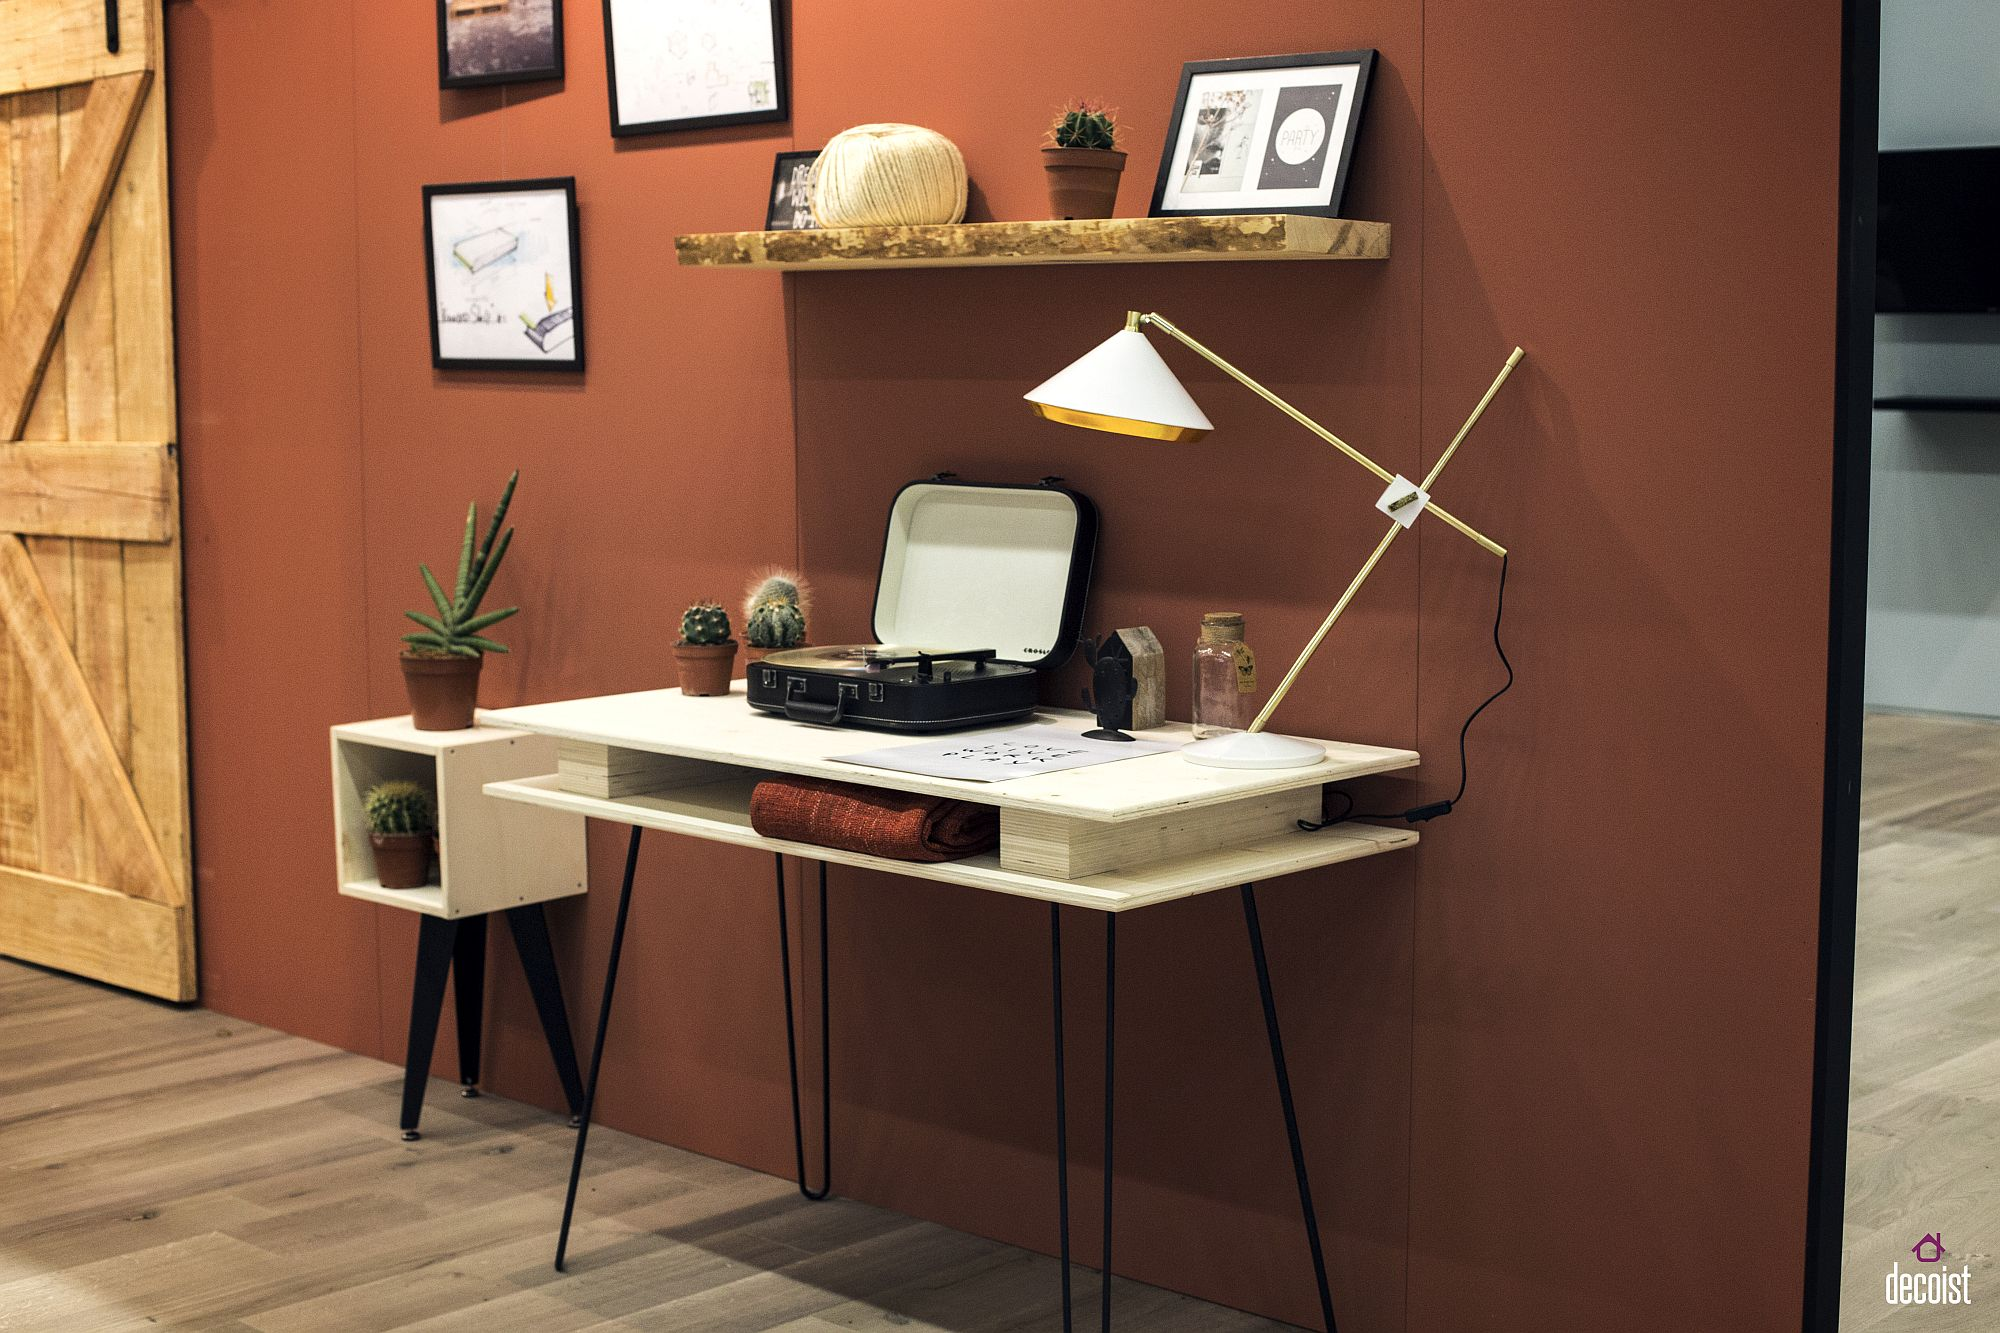 Slim and ultra-stylish table in white for the small home workspace in the hallway